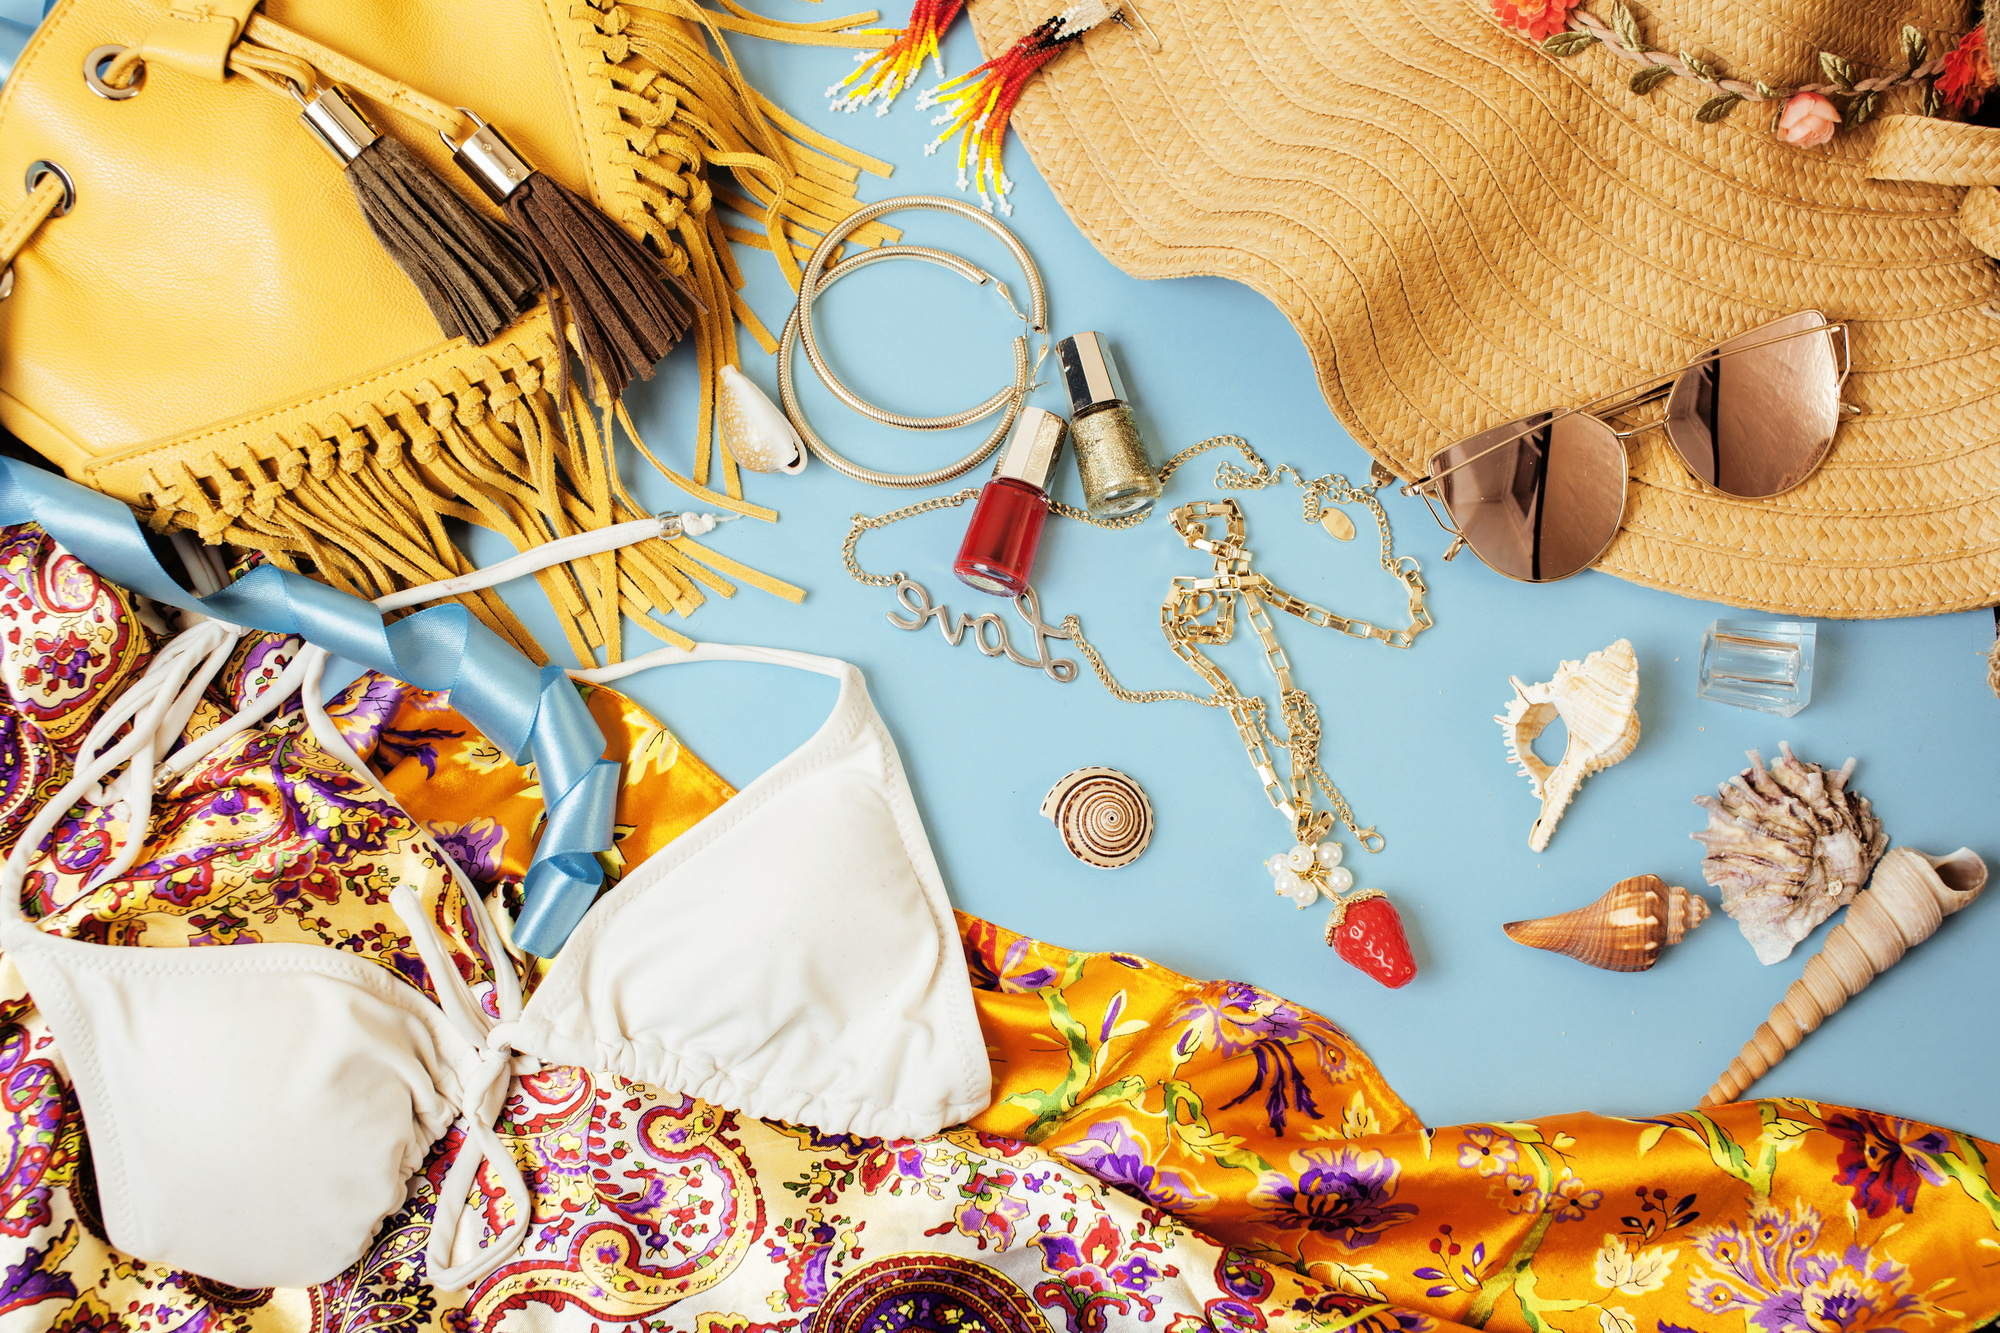 Organize Your Bling: 5 Tips for Packing Jewelry When You Travel